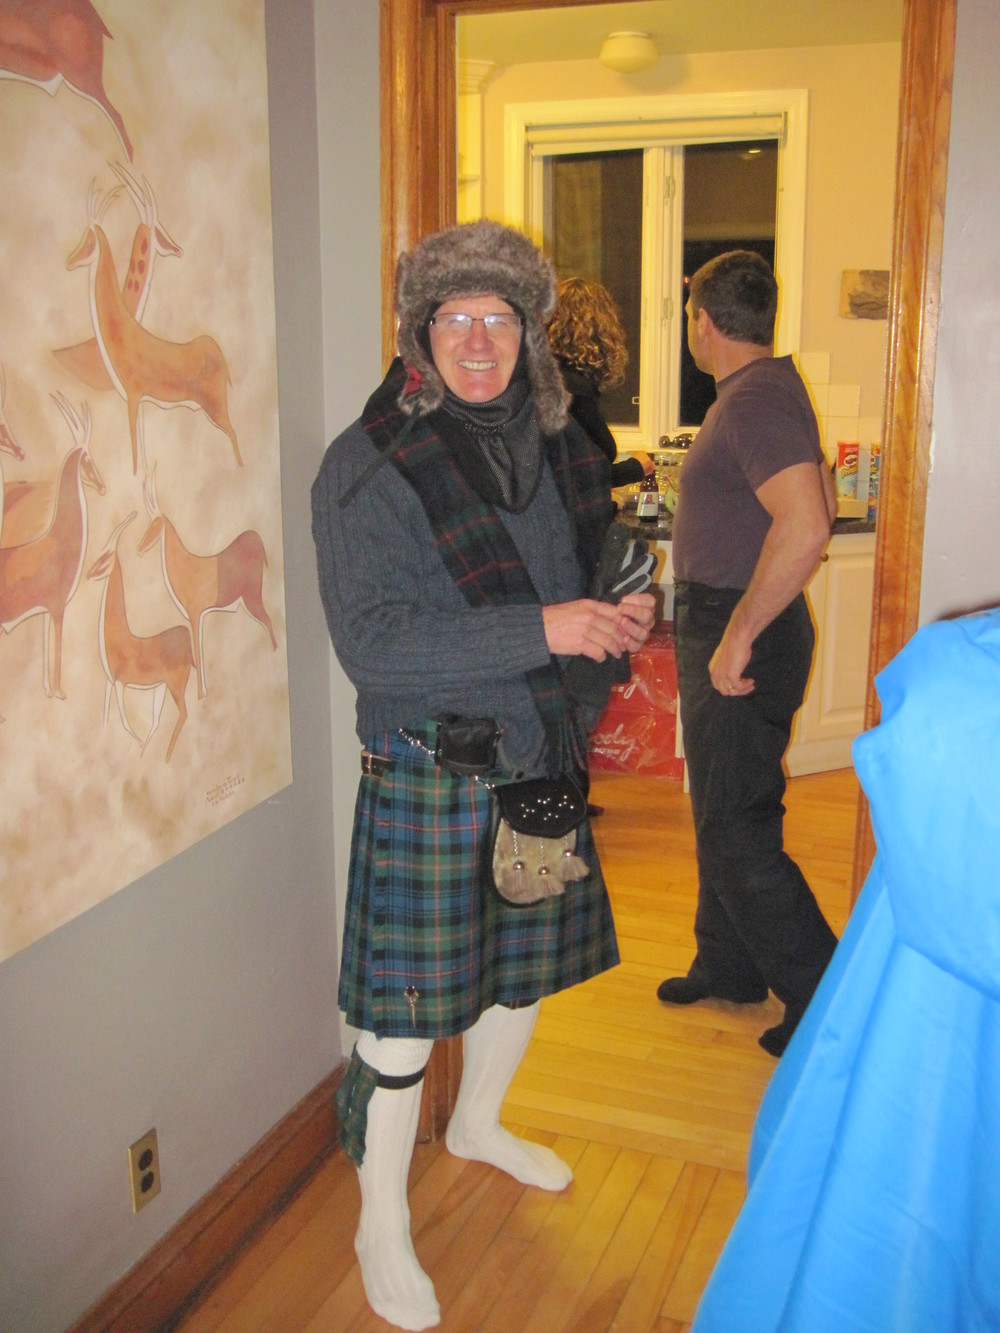 Getting ready for the kilt skate in January 2013 -- one of the coldest Sir John A house parties.